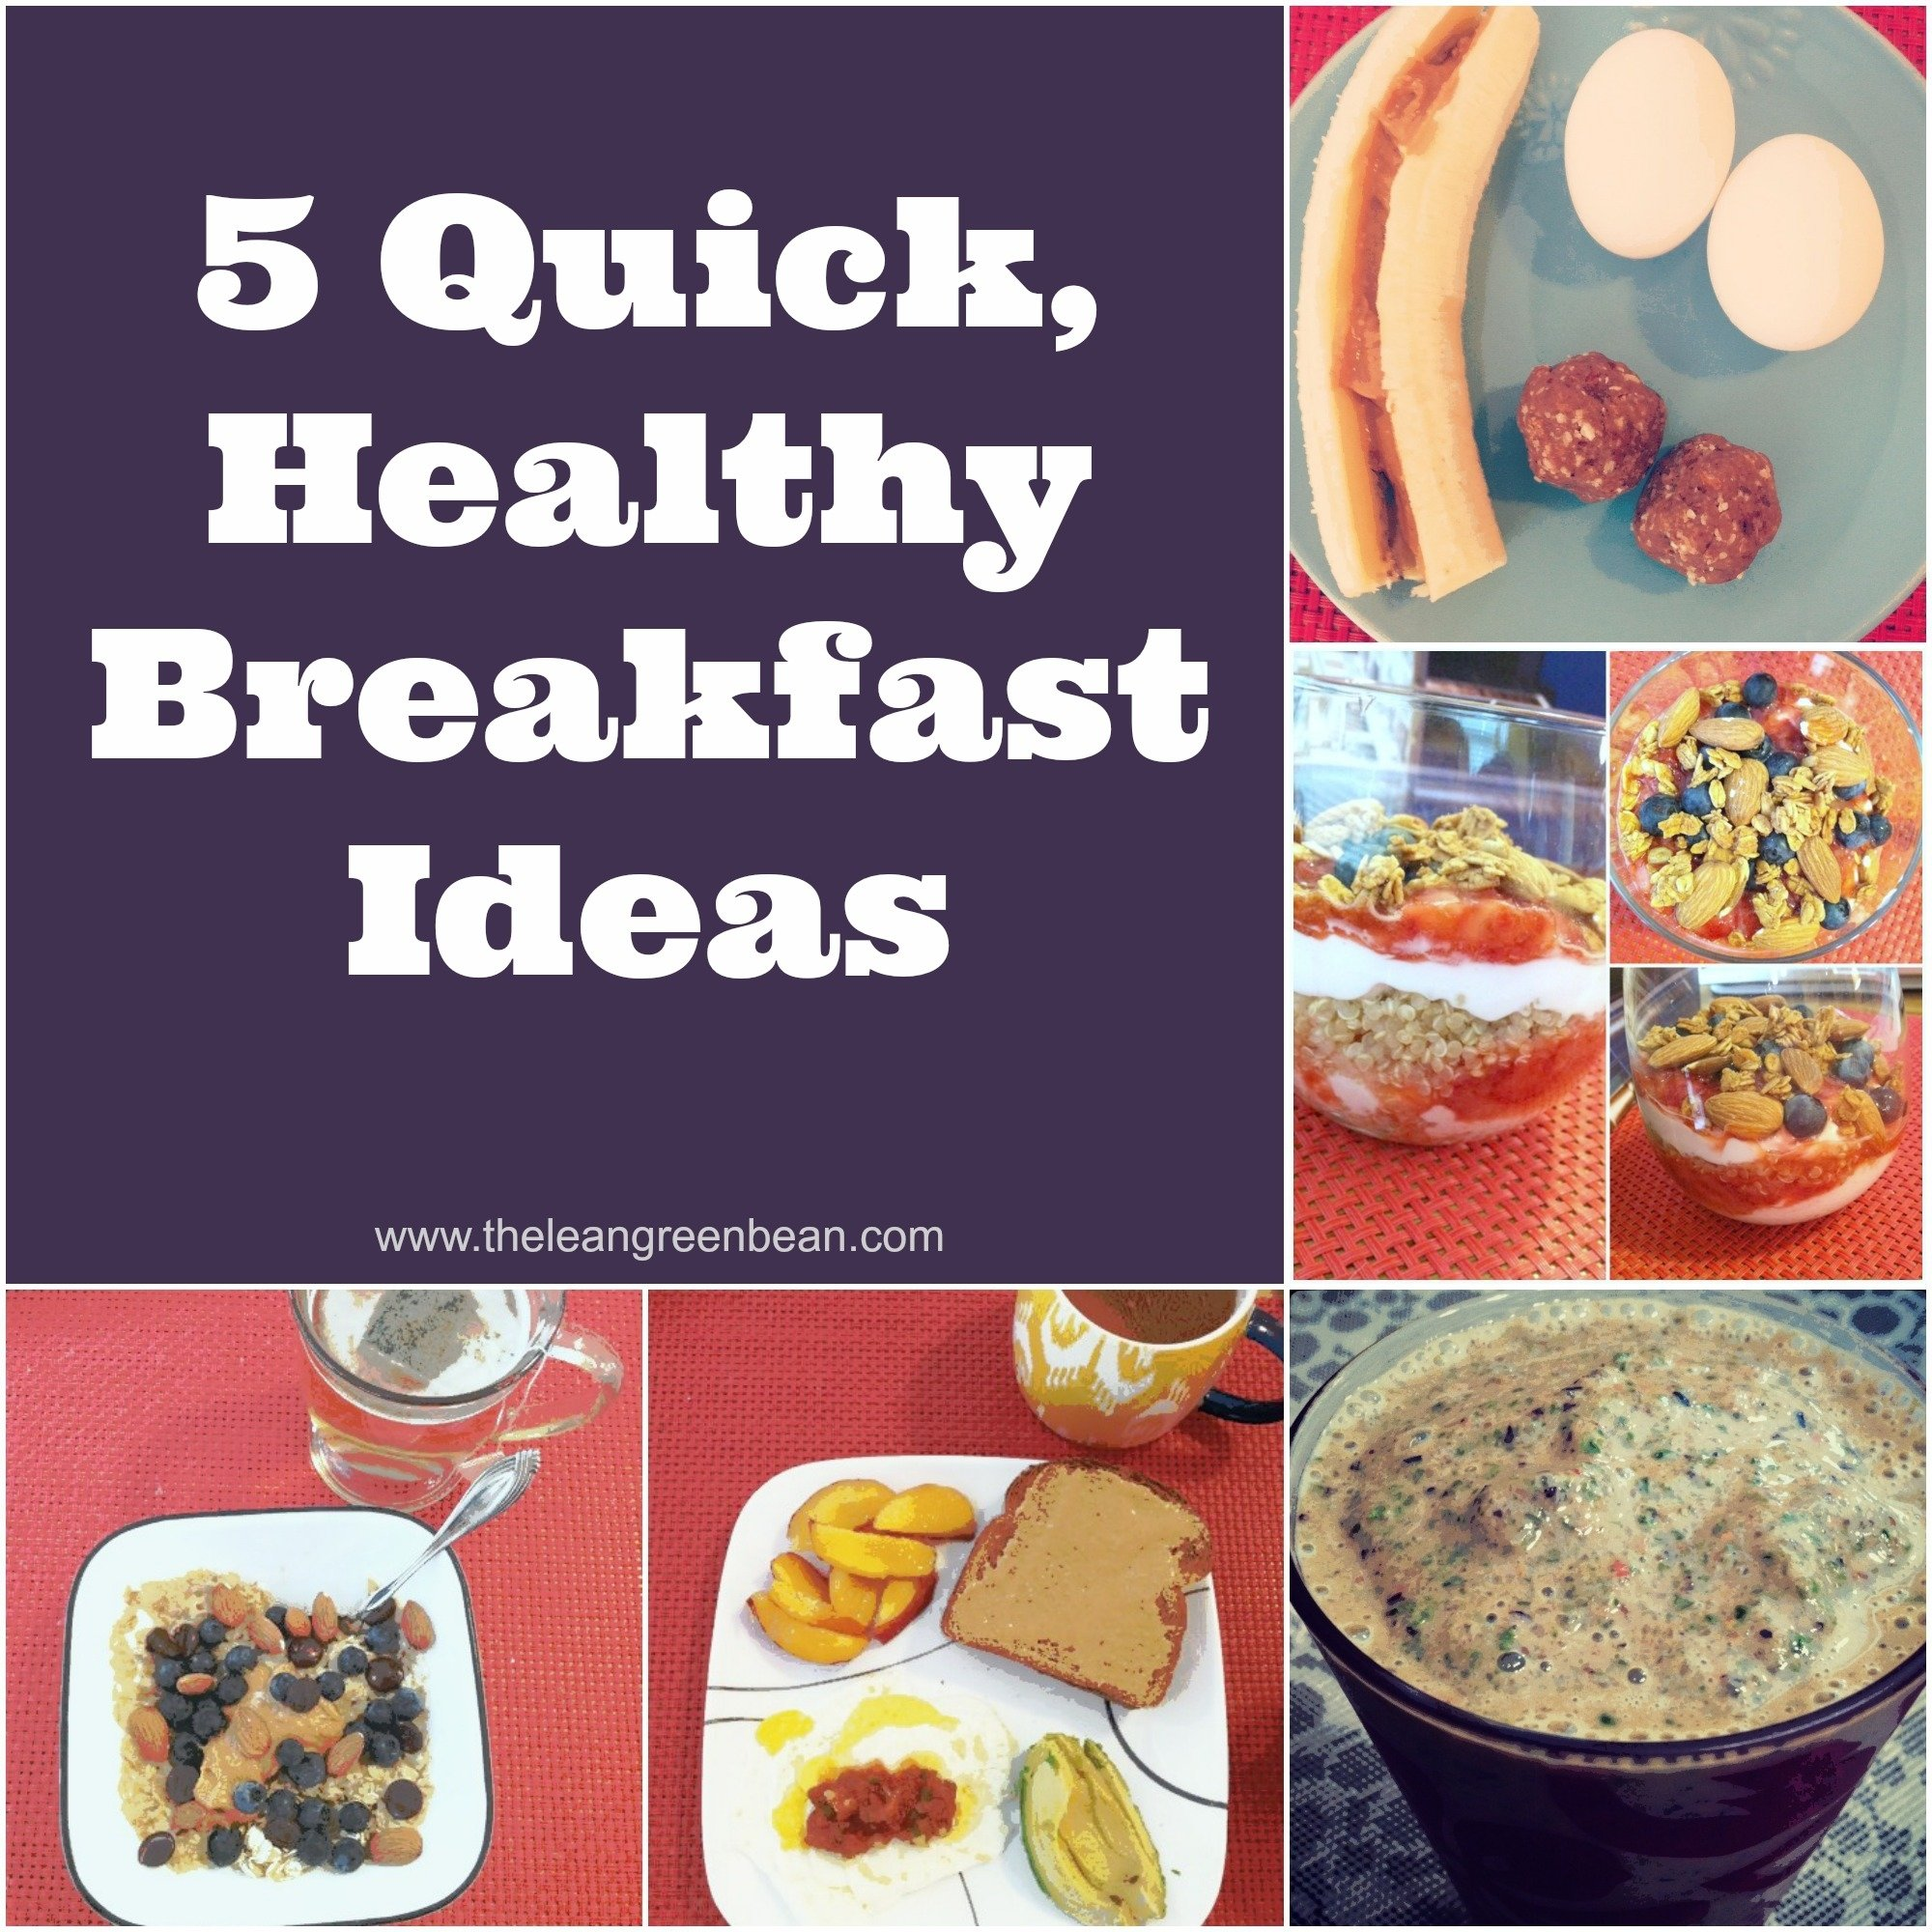 10 Lovely Quick And Healthy Breakfast Ideas 5 quick healthy breakfast ideas from a registered dietitian